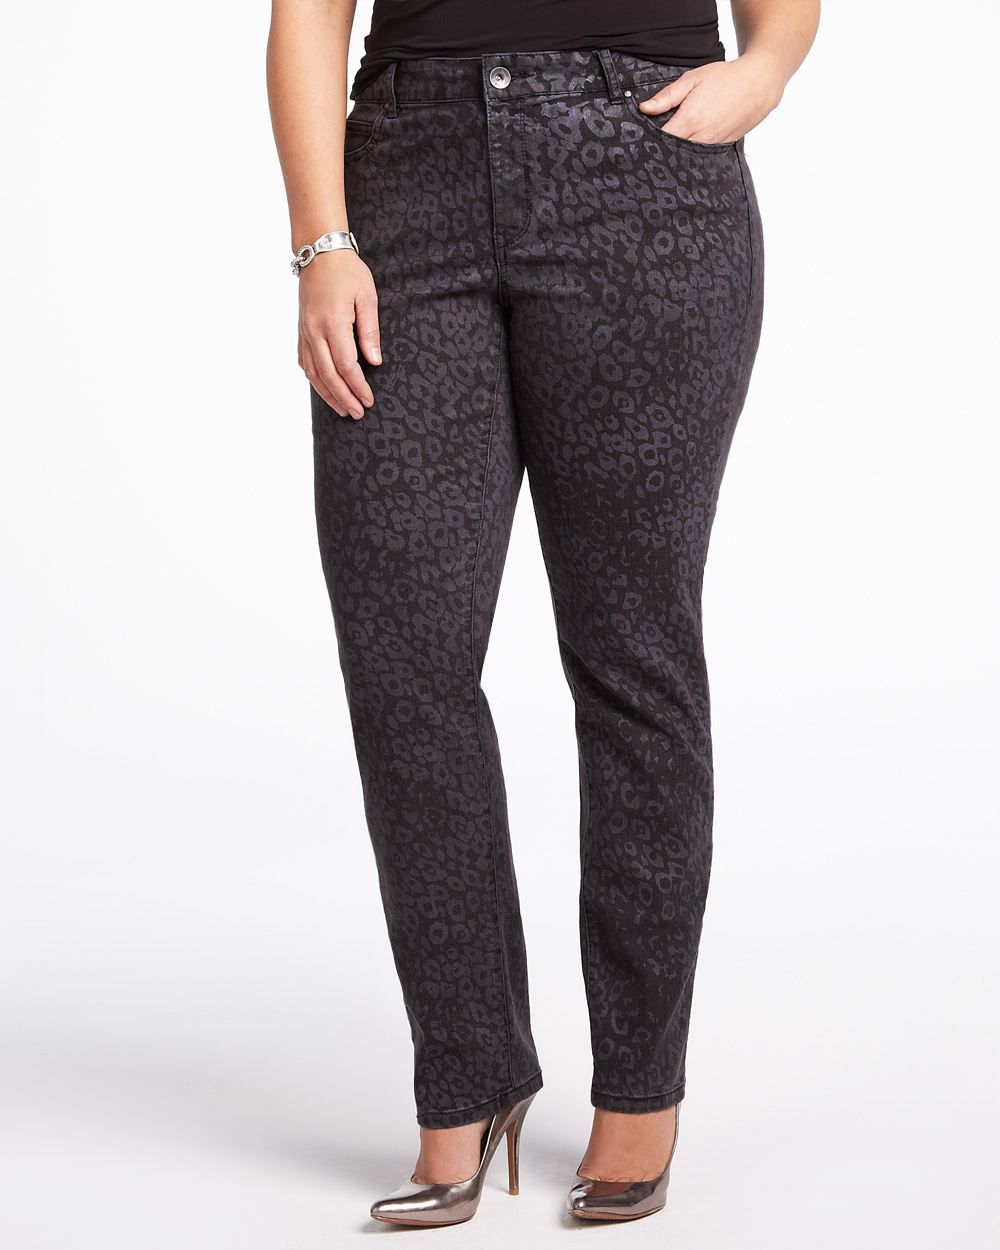 dkny metallic jegging  #AdditionElle $39.99